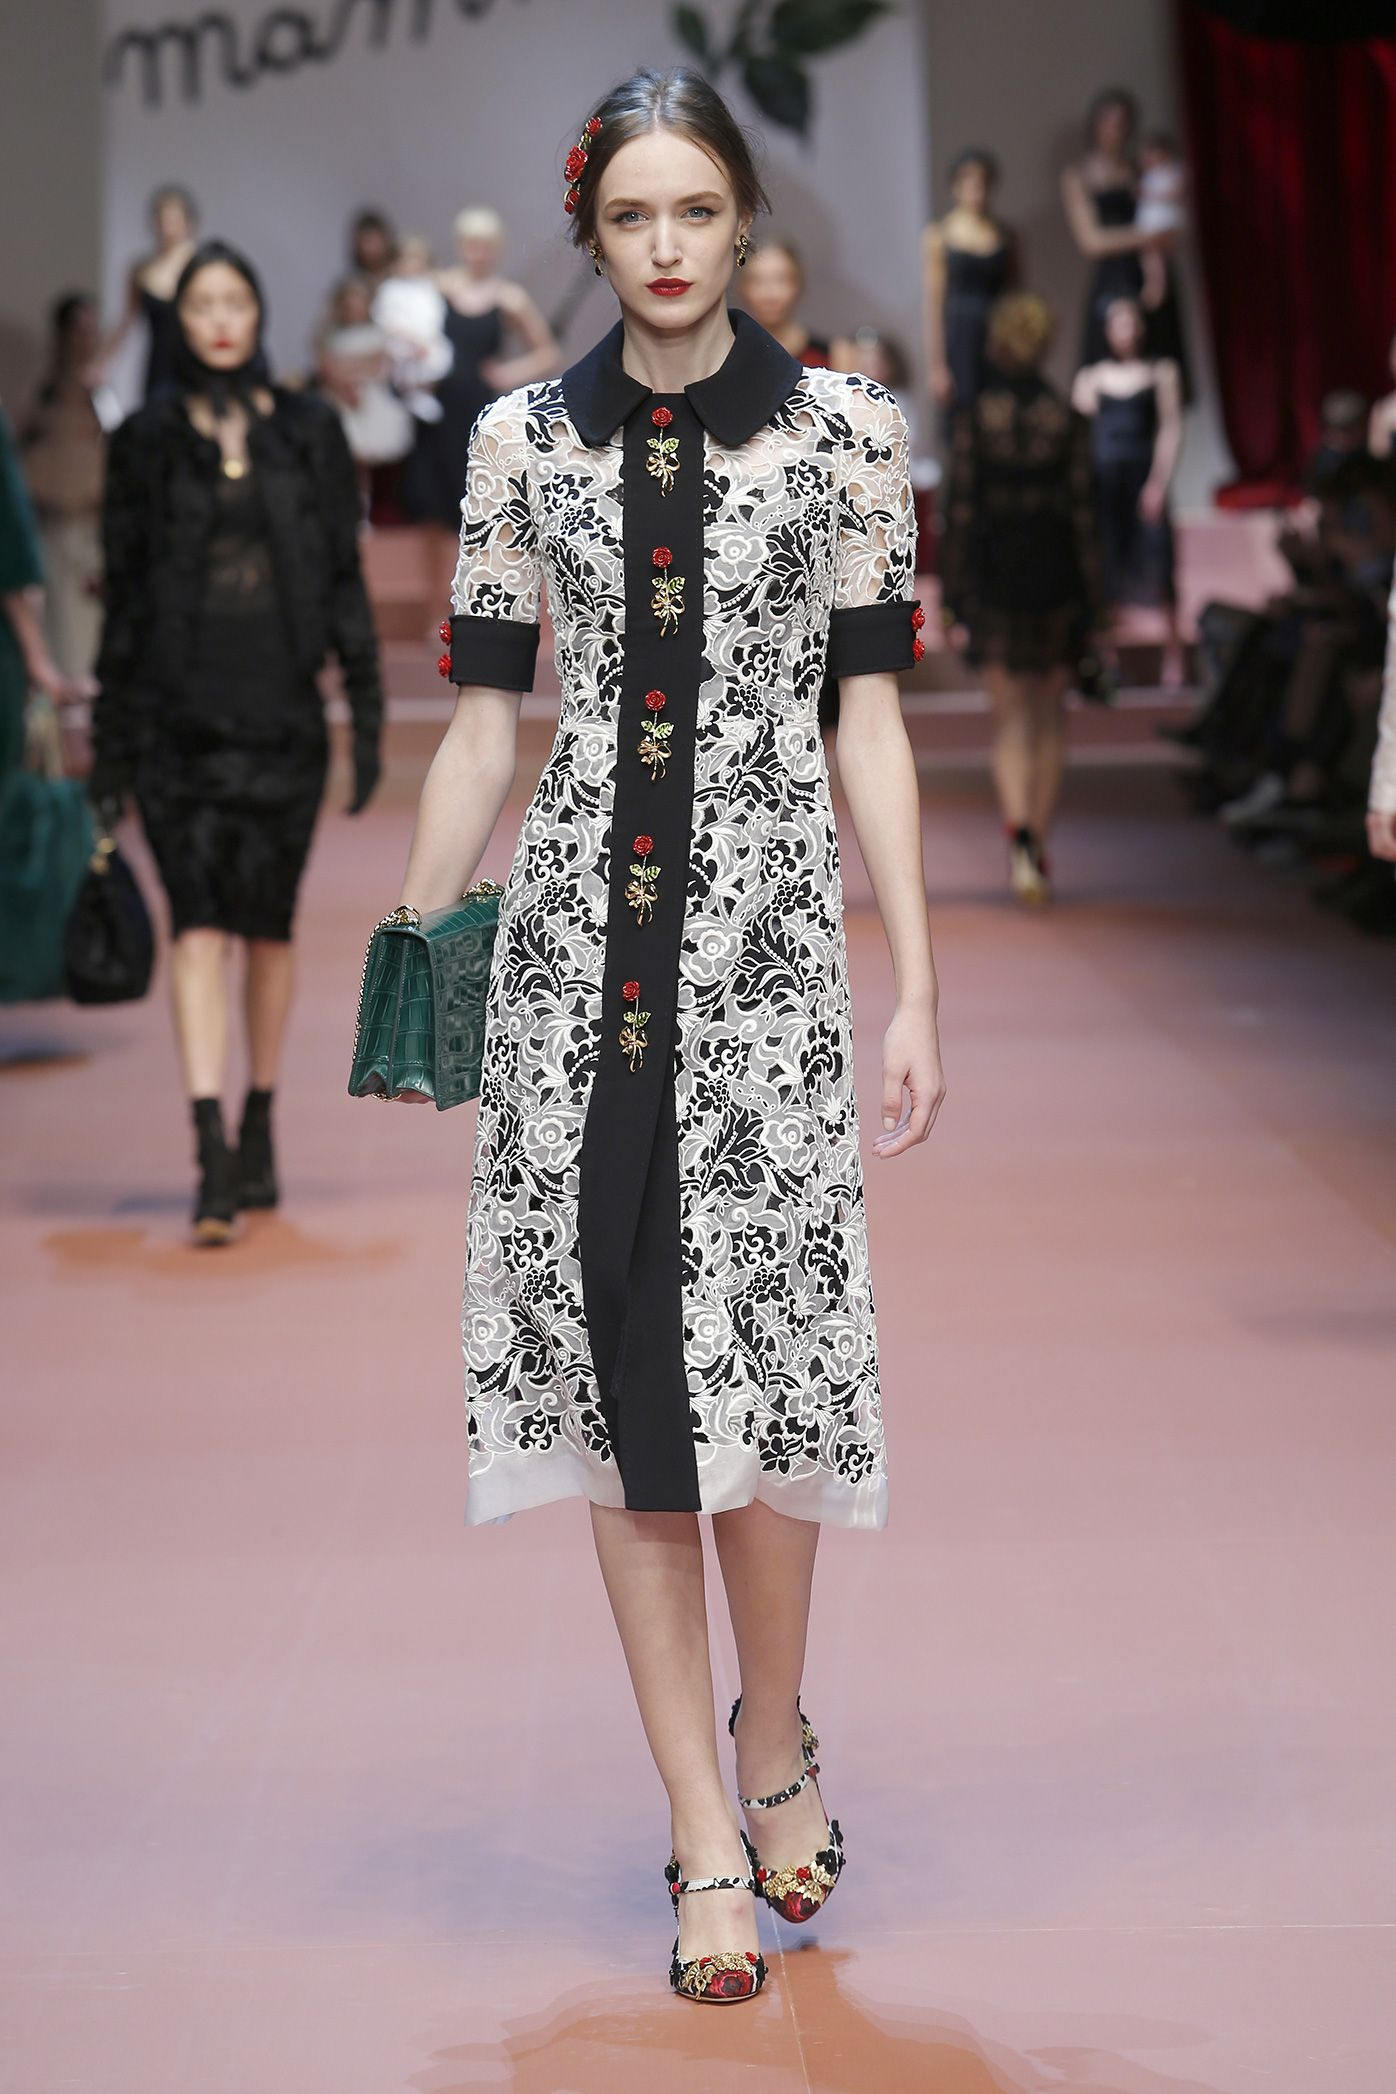 dolce-and-gabbana-winter-2016-women-fashion-show-runway-13